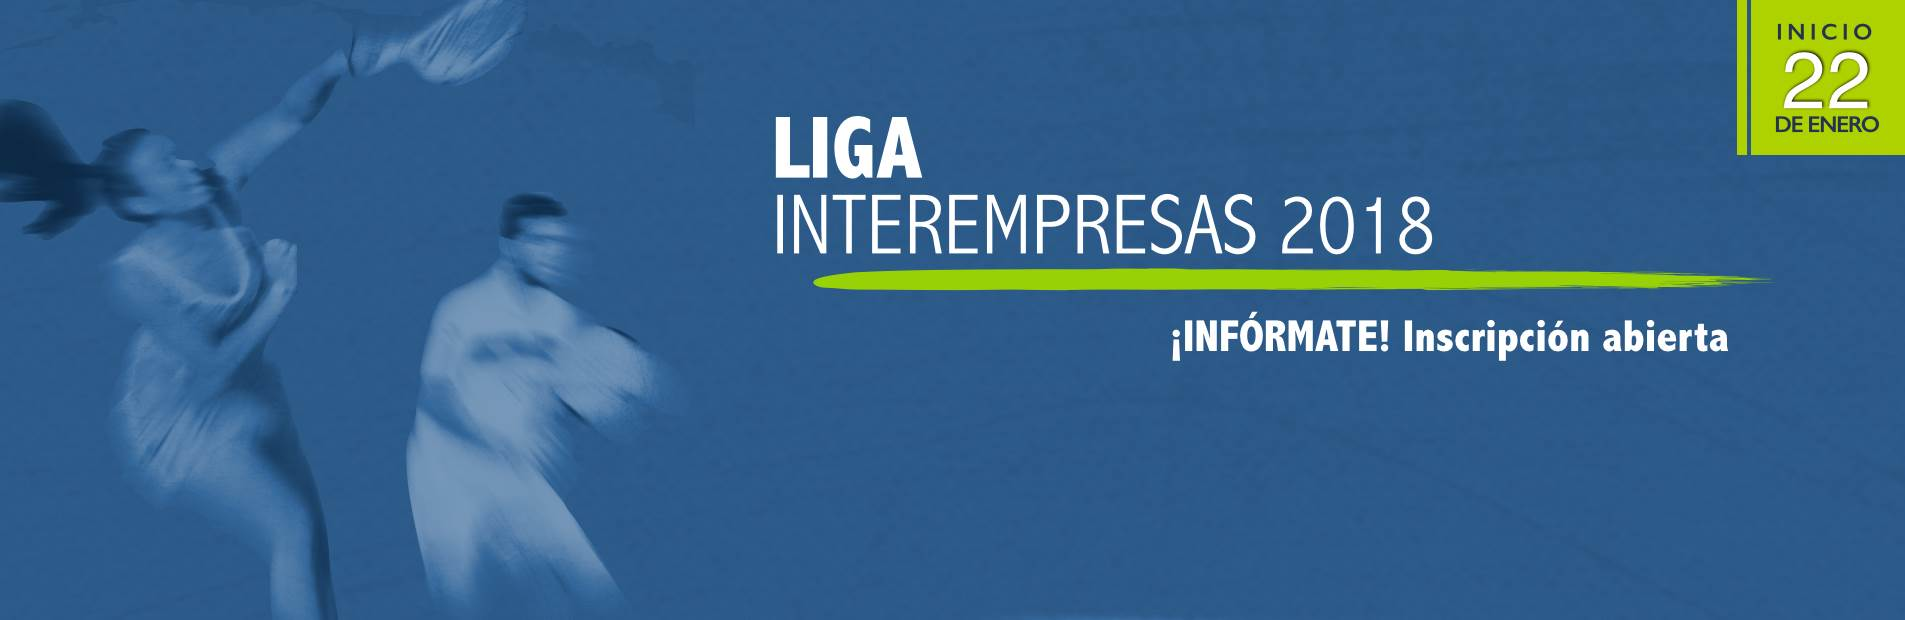 Slider liga interempresas 2018_2.006.jpg